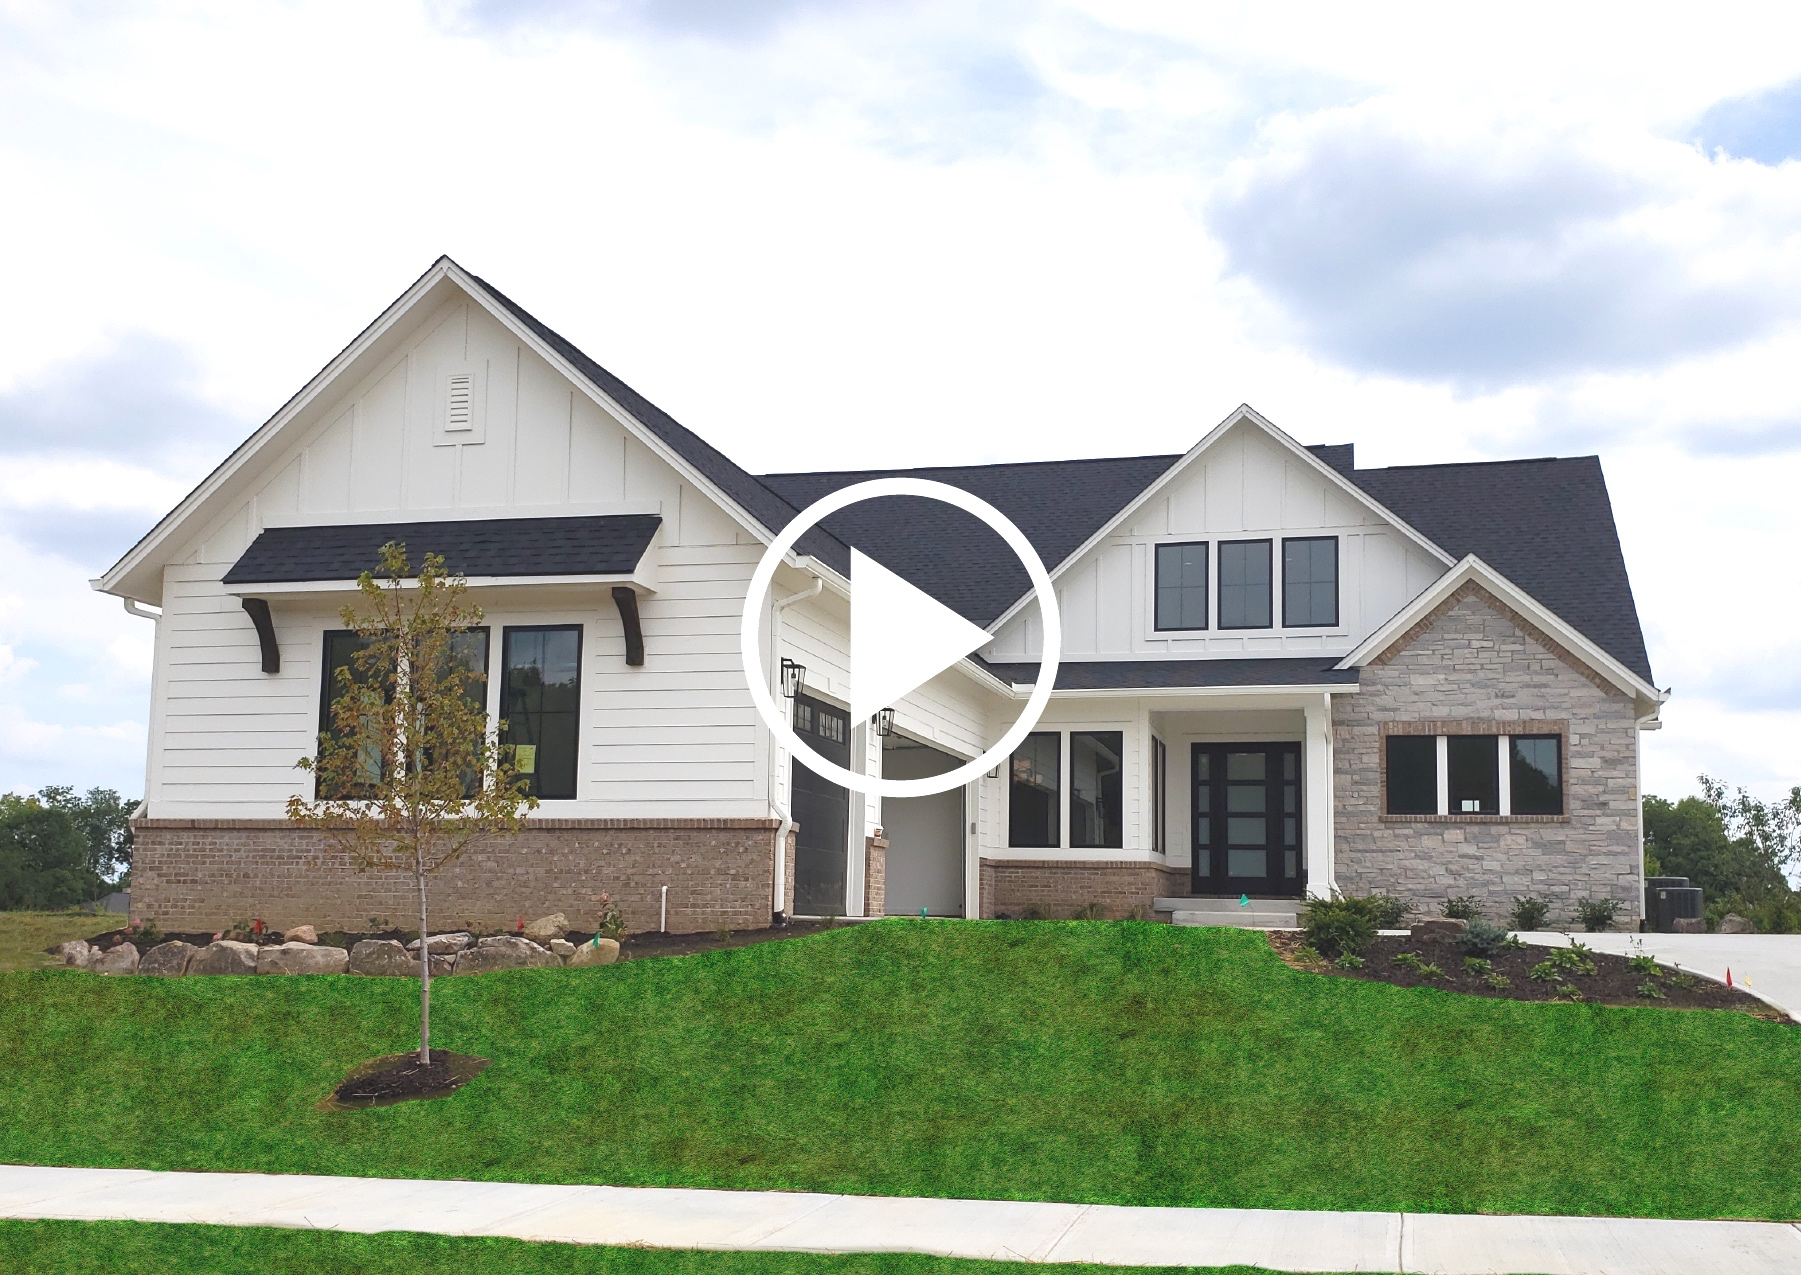 CUSTOM HOME: Contemporary, 4 Bedroom, 2-Story with Basement RE-BUILD IN:  Chatham Hills ,  Maple Ridge ,  Gray Oaks  or  Holliday Farms